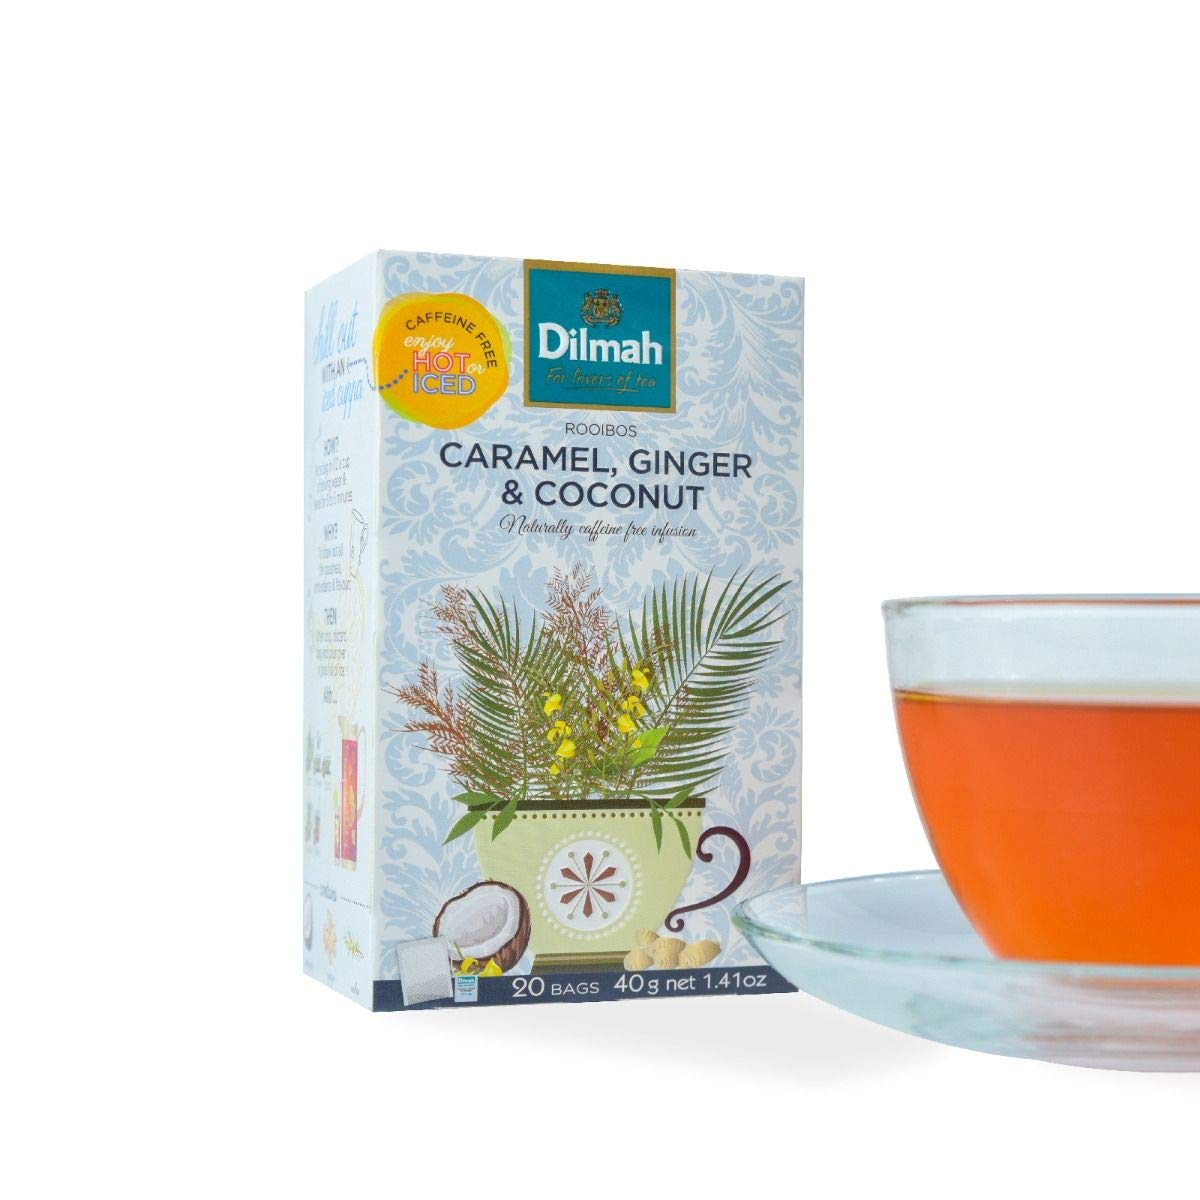 Dilmah Red Rooibos with Caramel Ginger and Coconut Tea - 20 Tea Bags X 8 Pack - Naturally Caffeine Free by Dilmah